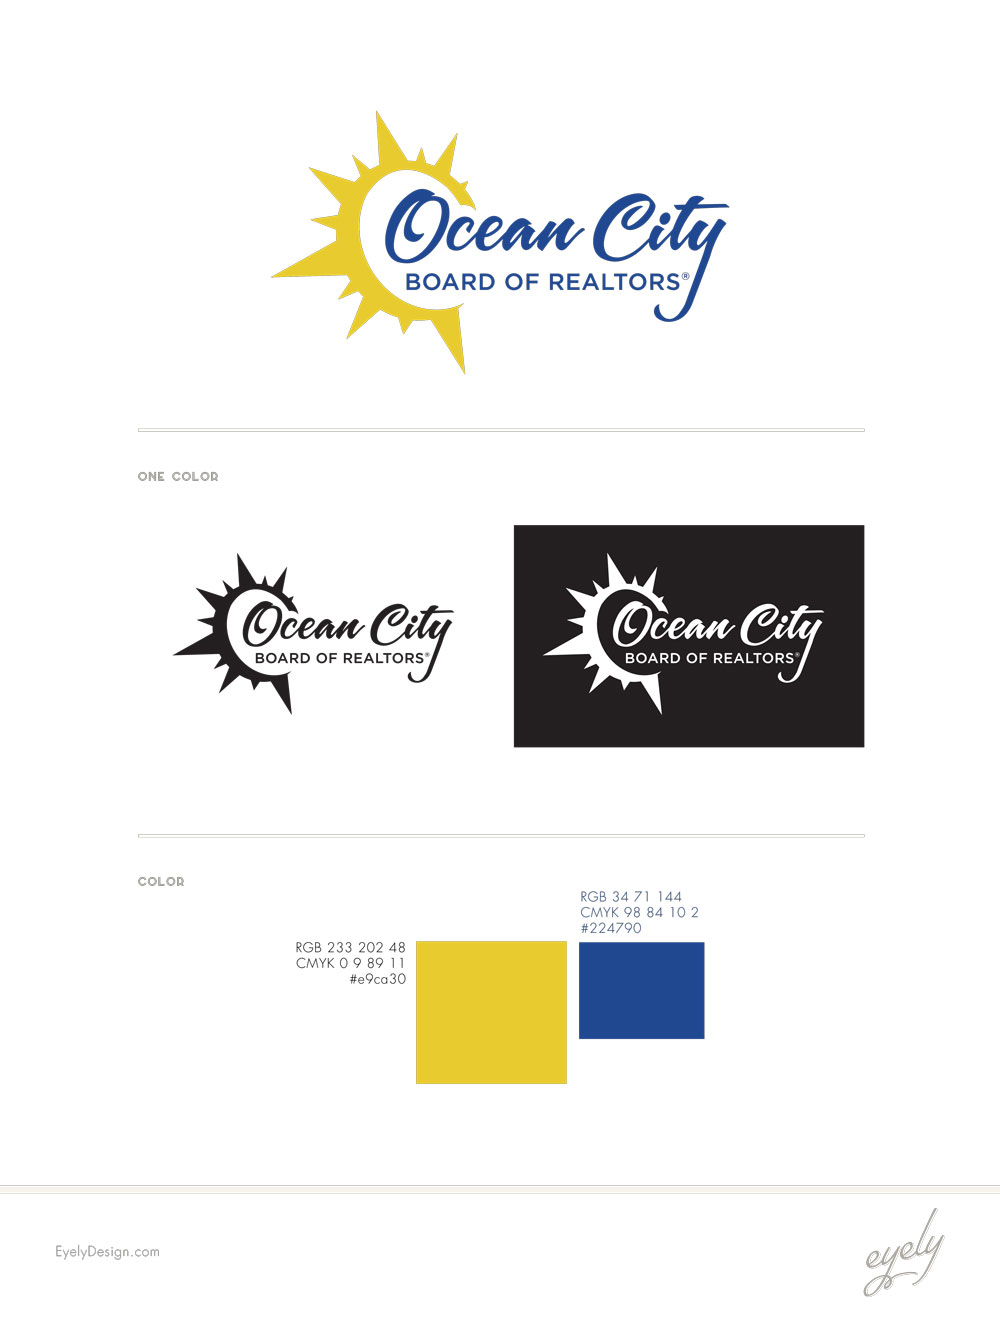 brand design for real estate agency in ocean city - OCBOR by eyely design